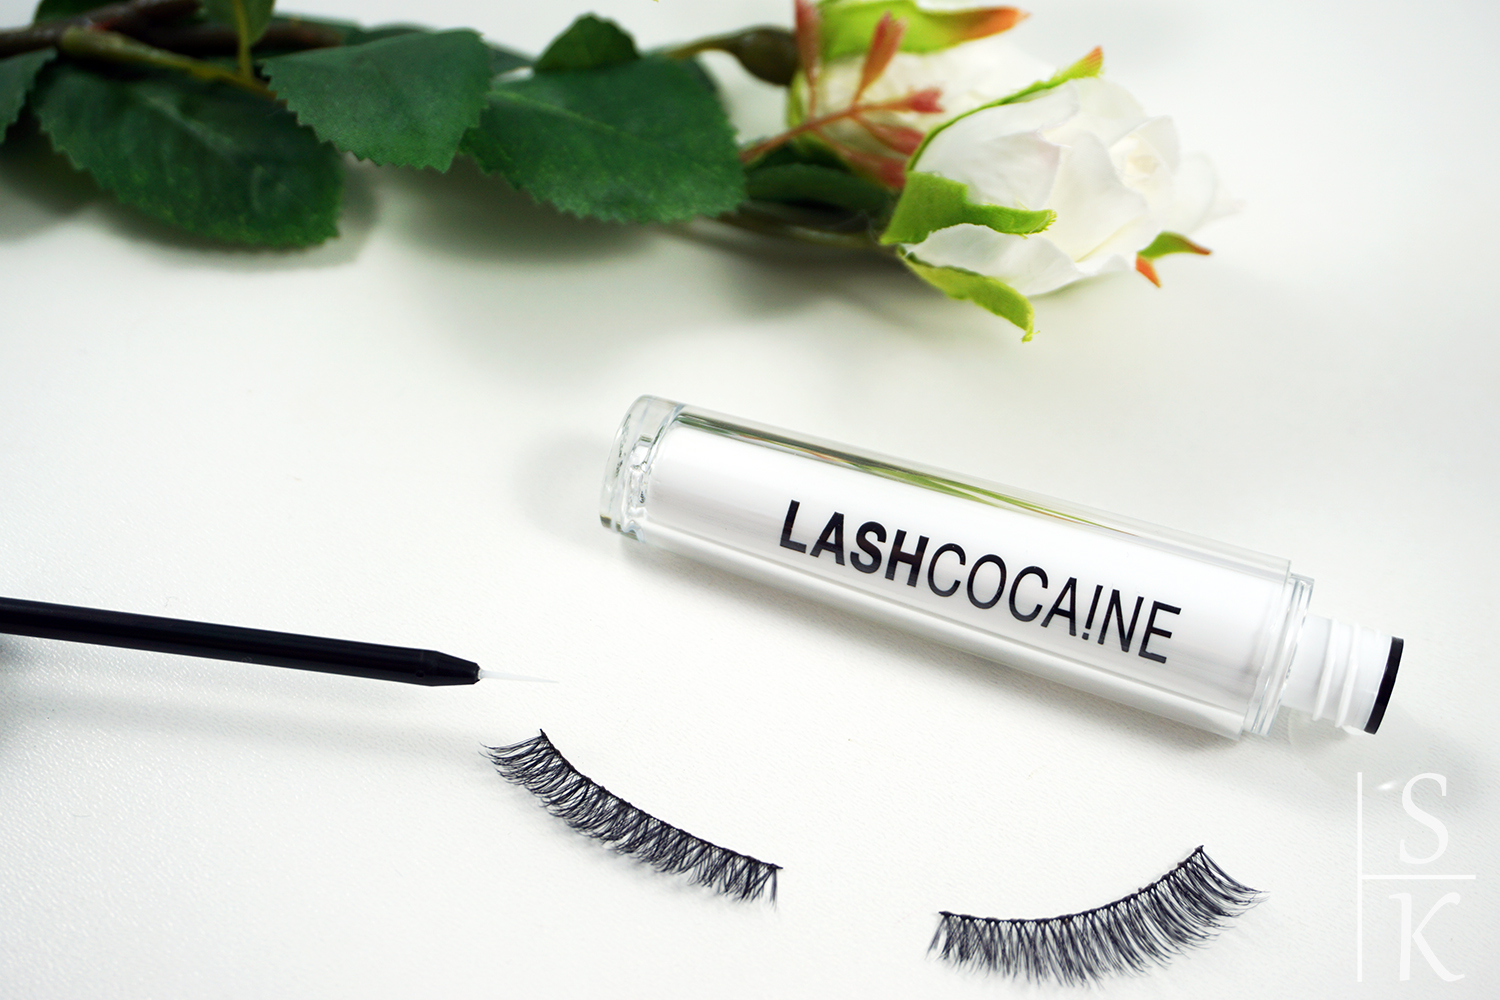 Review - Svenja Walberg Lashcocaine Wimpernserum @Horizont-Blog